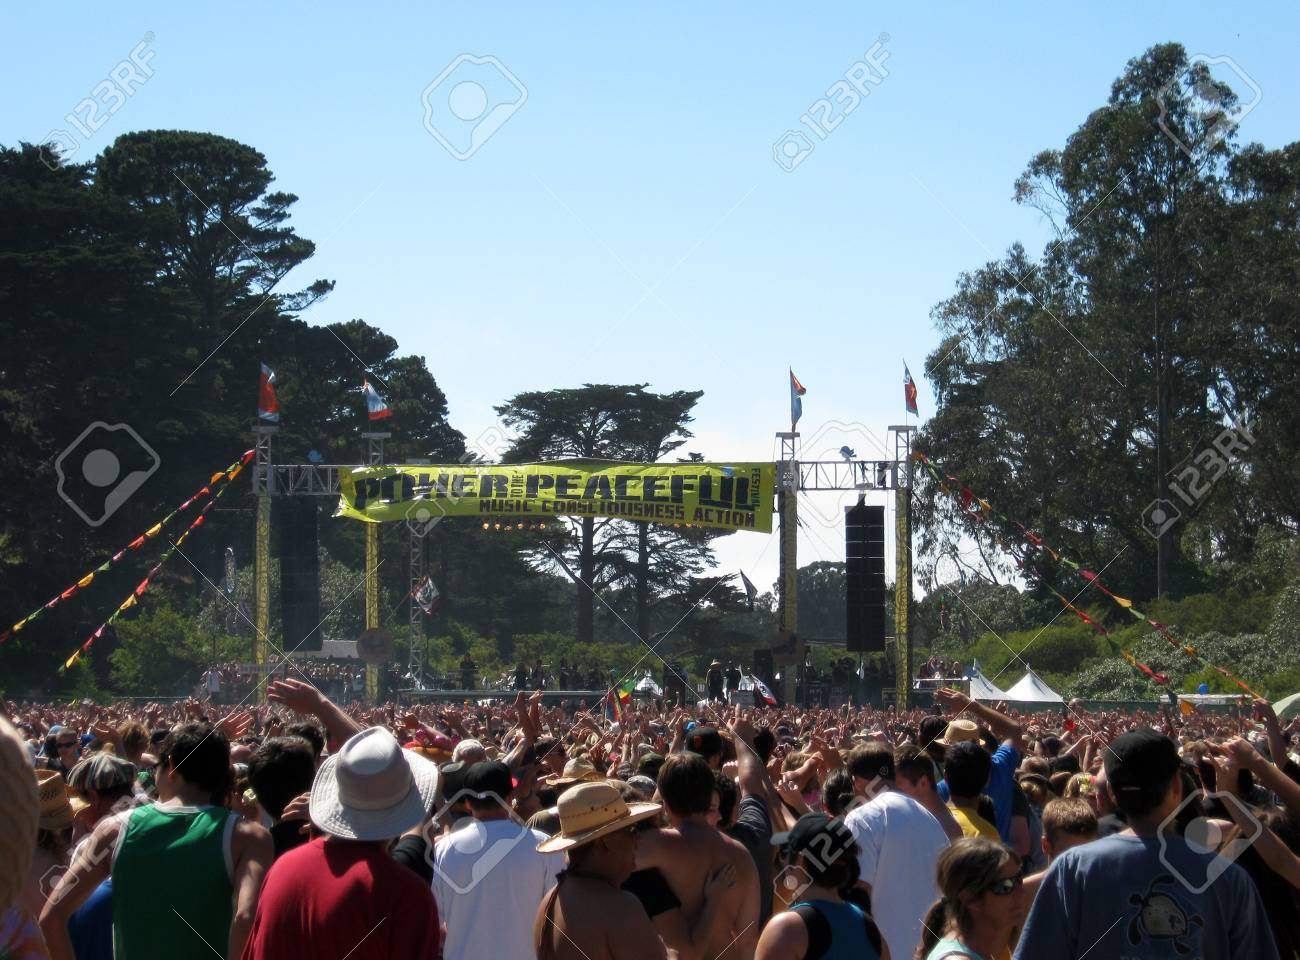 People wave hands in the air as Rebelution Plays at Power to the Peaceful 2010 Music Festival.  Taken September 11, 2010 at Golden Gate Park San Francisco. Stock Photo - 7863876